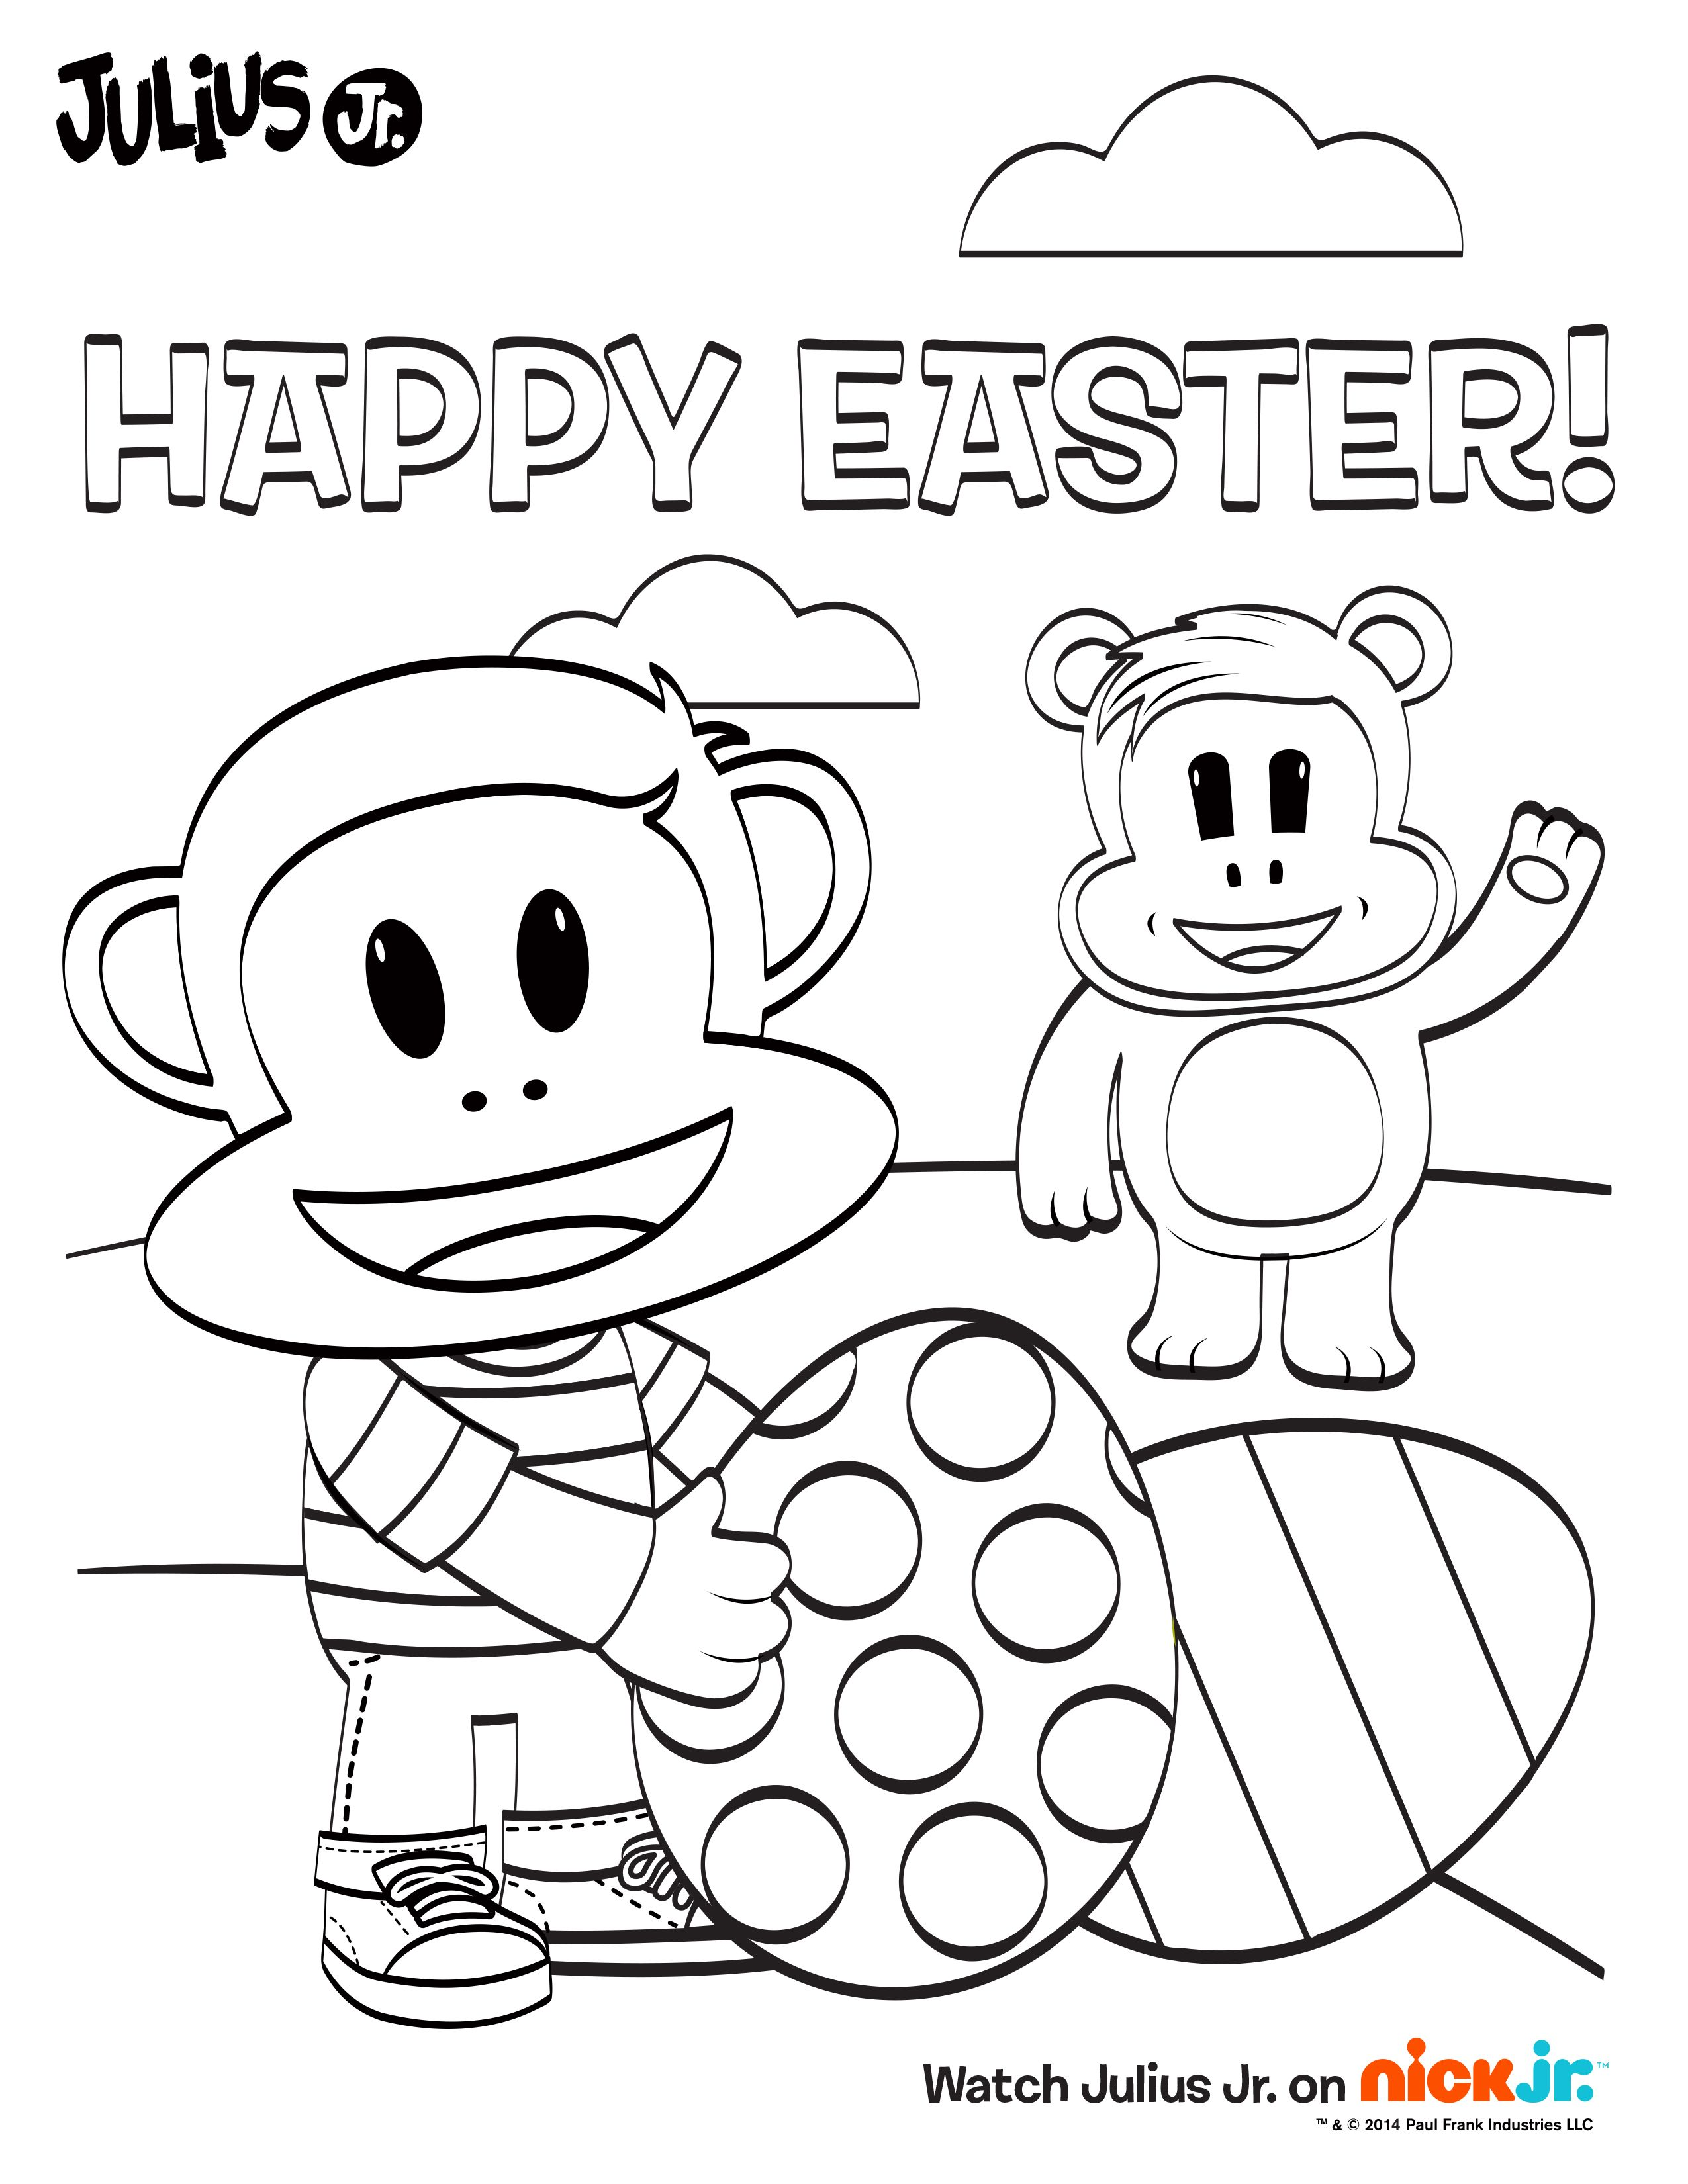 Color This Activity Sheet And Have A Wonderful Easter